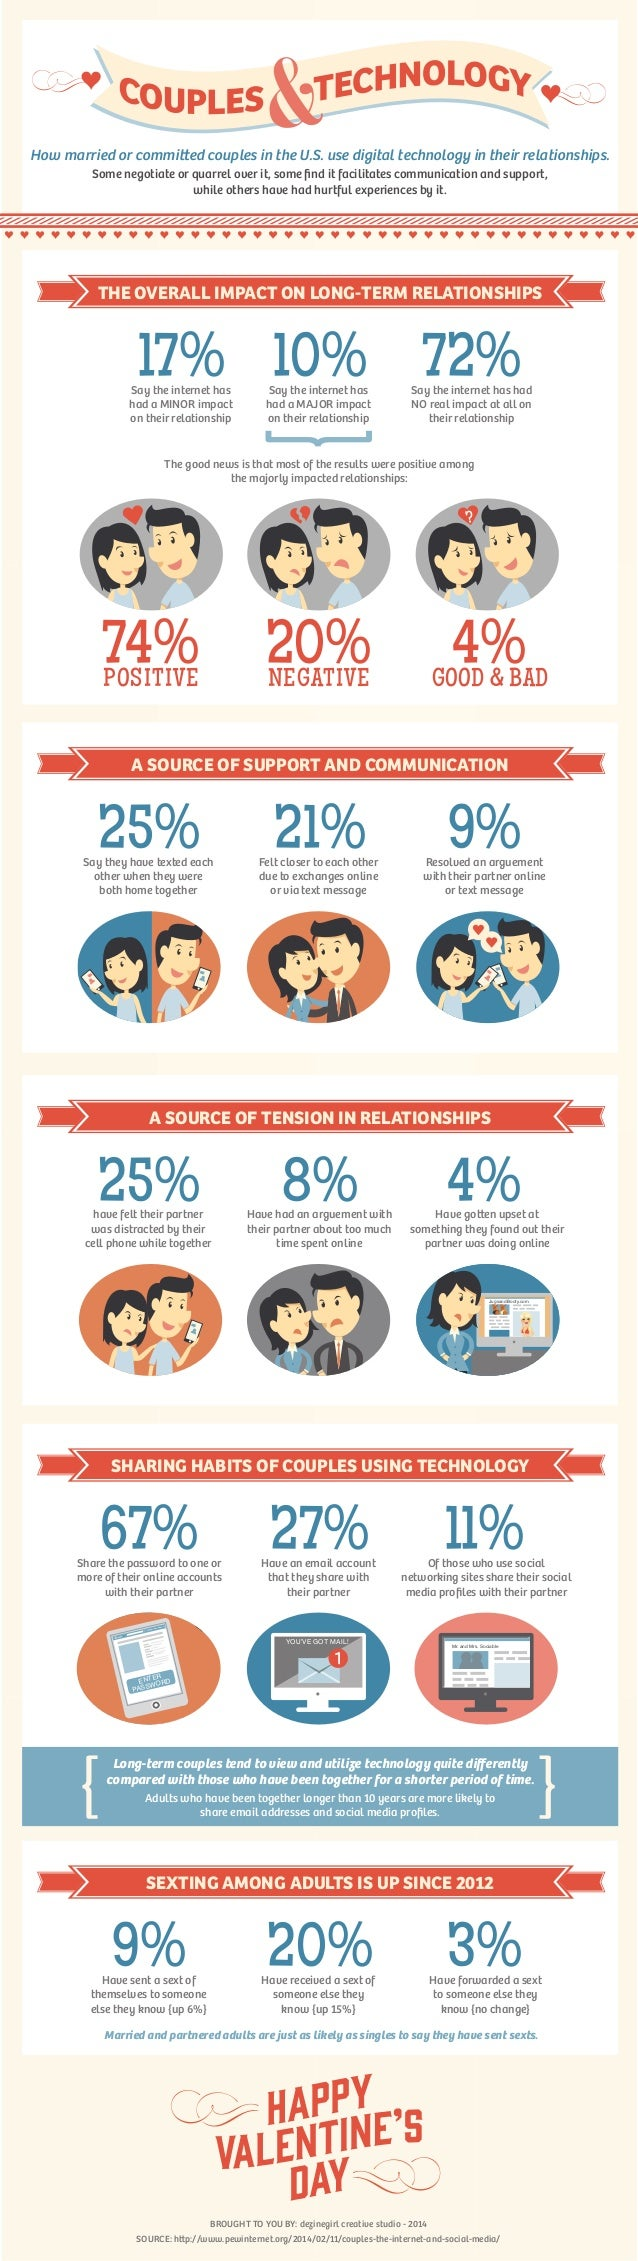 How married or commi ed couples in the U.S. use digital technology in their relationships. Some negotiate or quarrel over ...